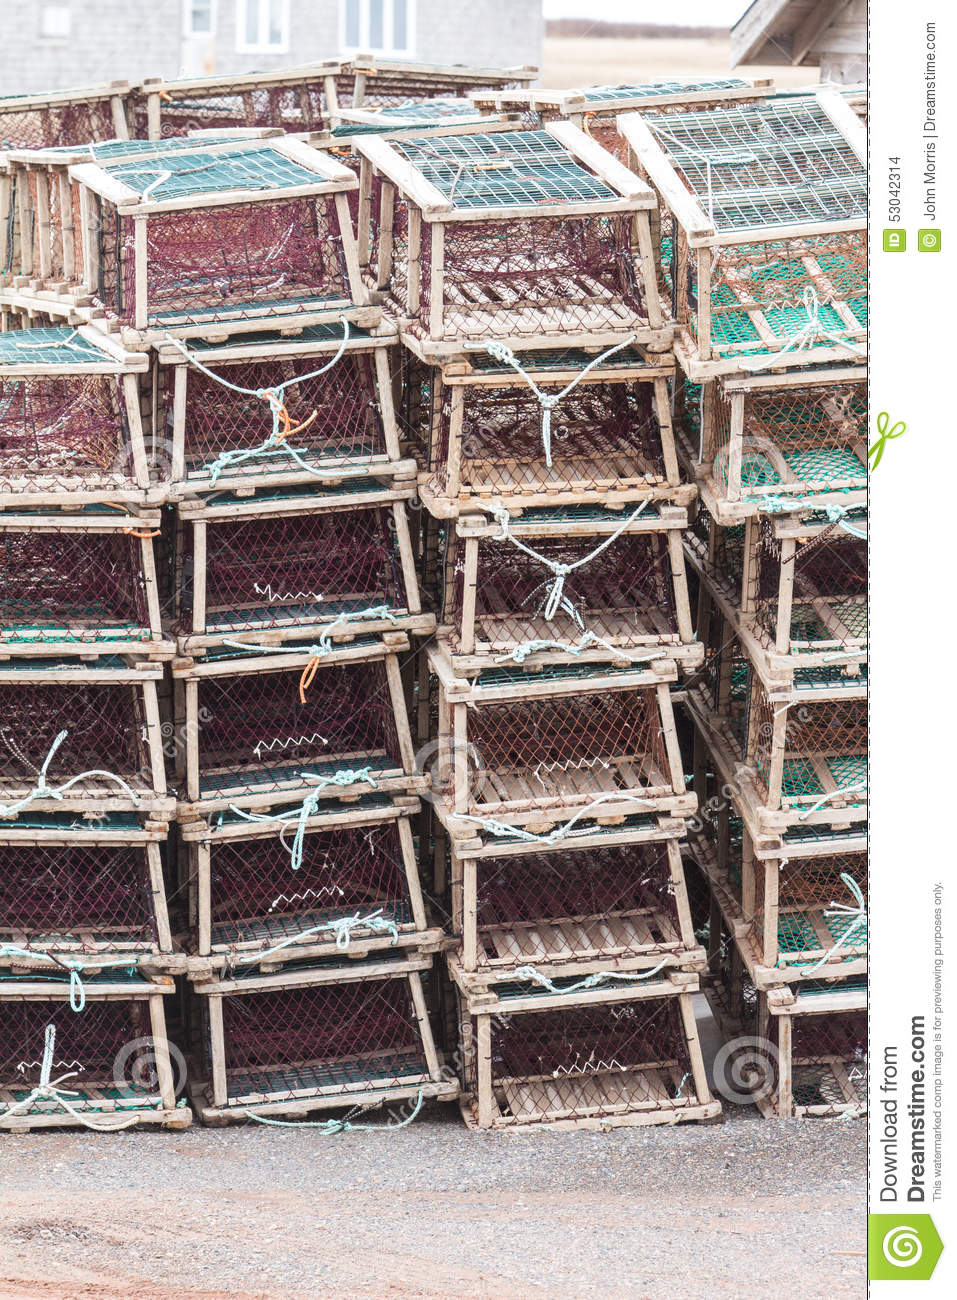 Lobster Traps on Wharf stock photo. Image of marine, summer - 53042314